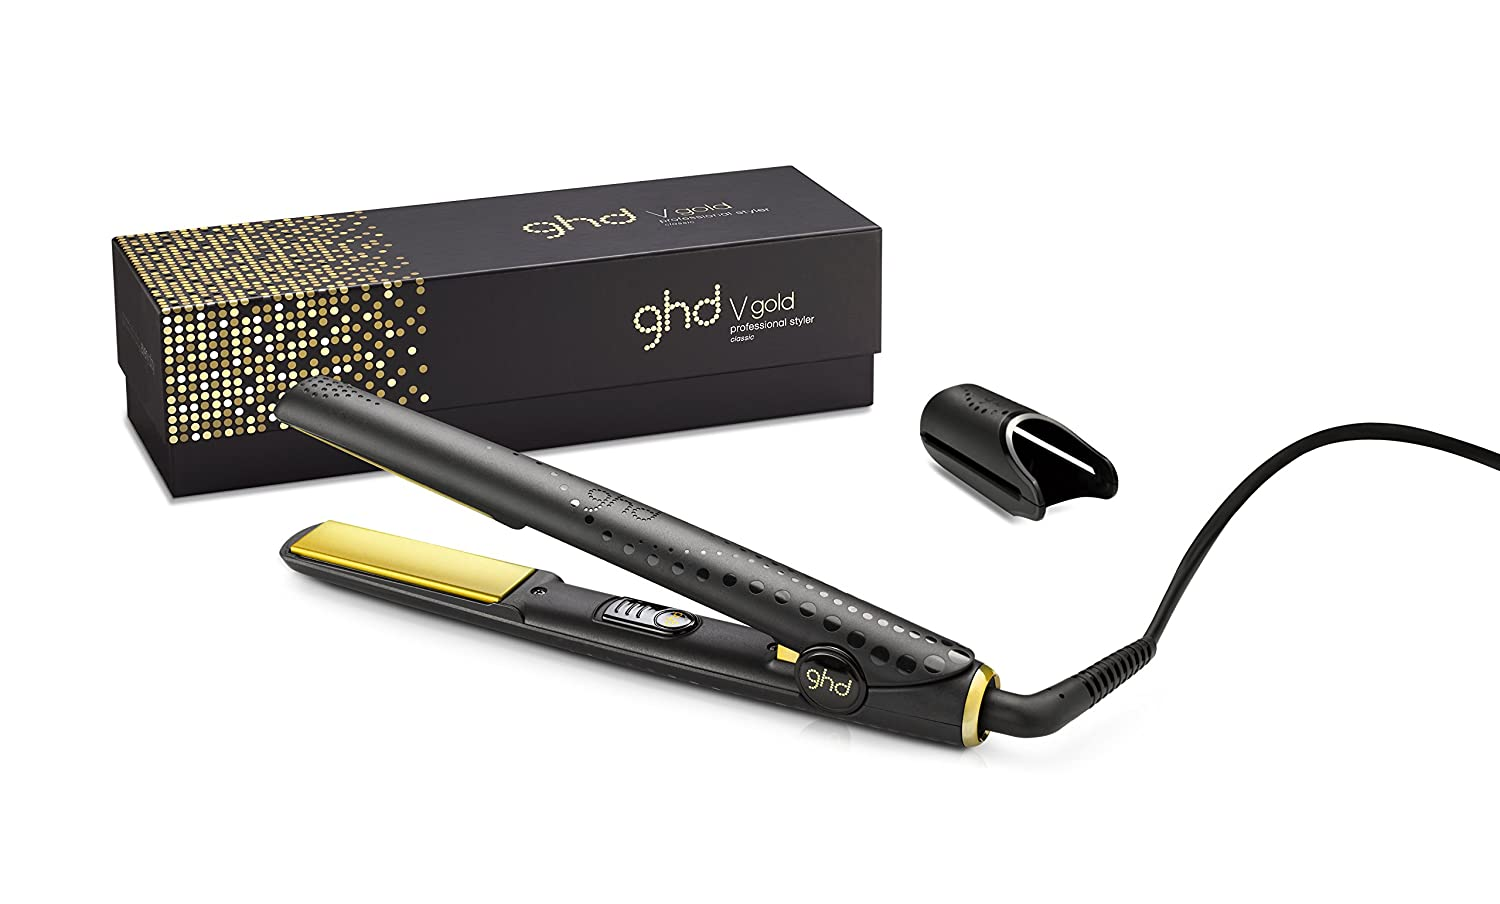 ghd package